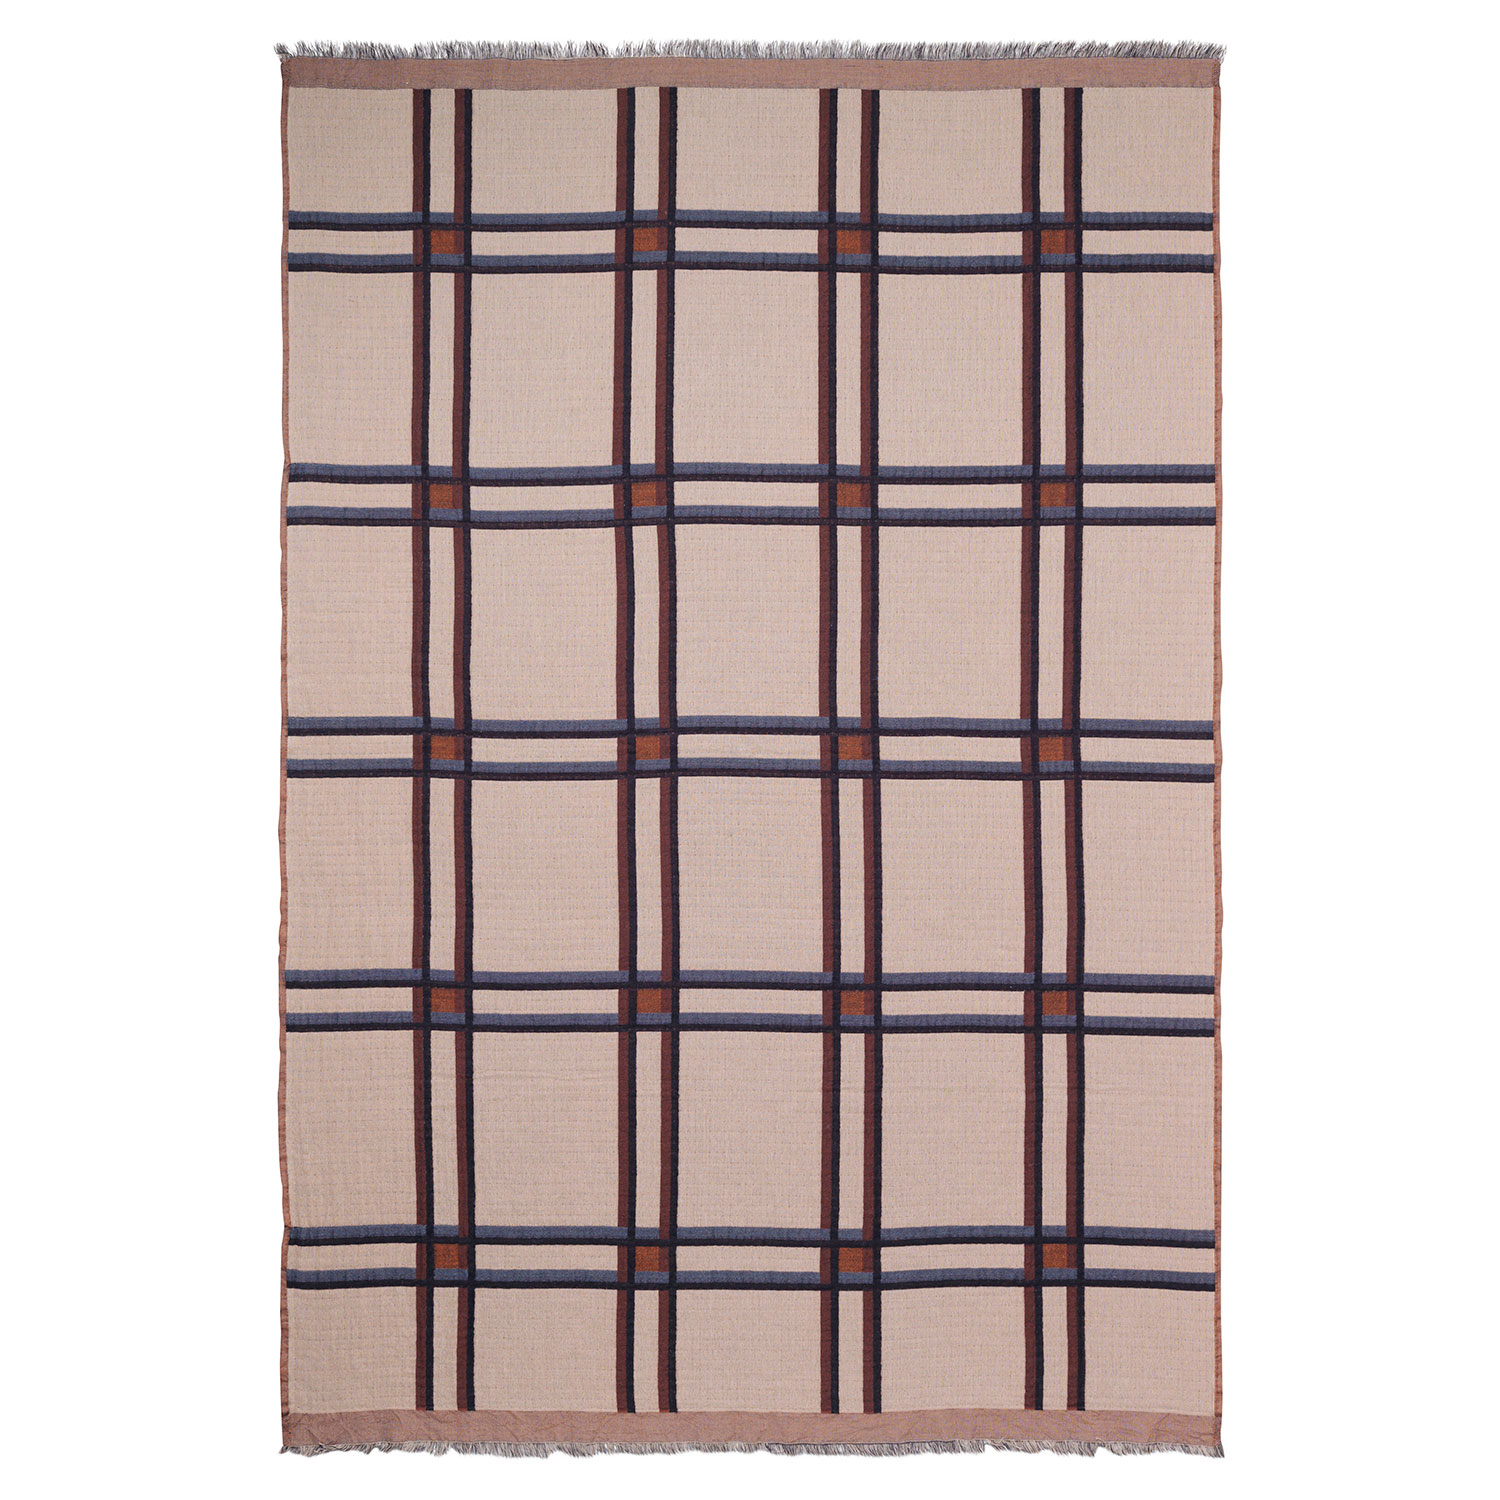 Checked Wool Blend Huopa, Beige, Ferm Living